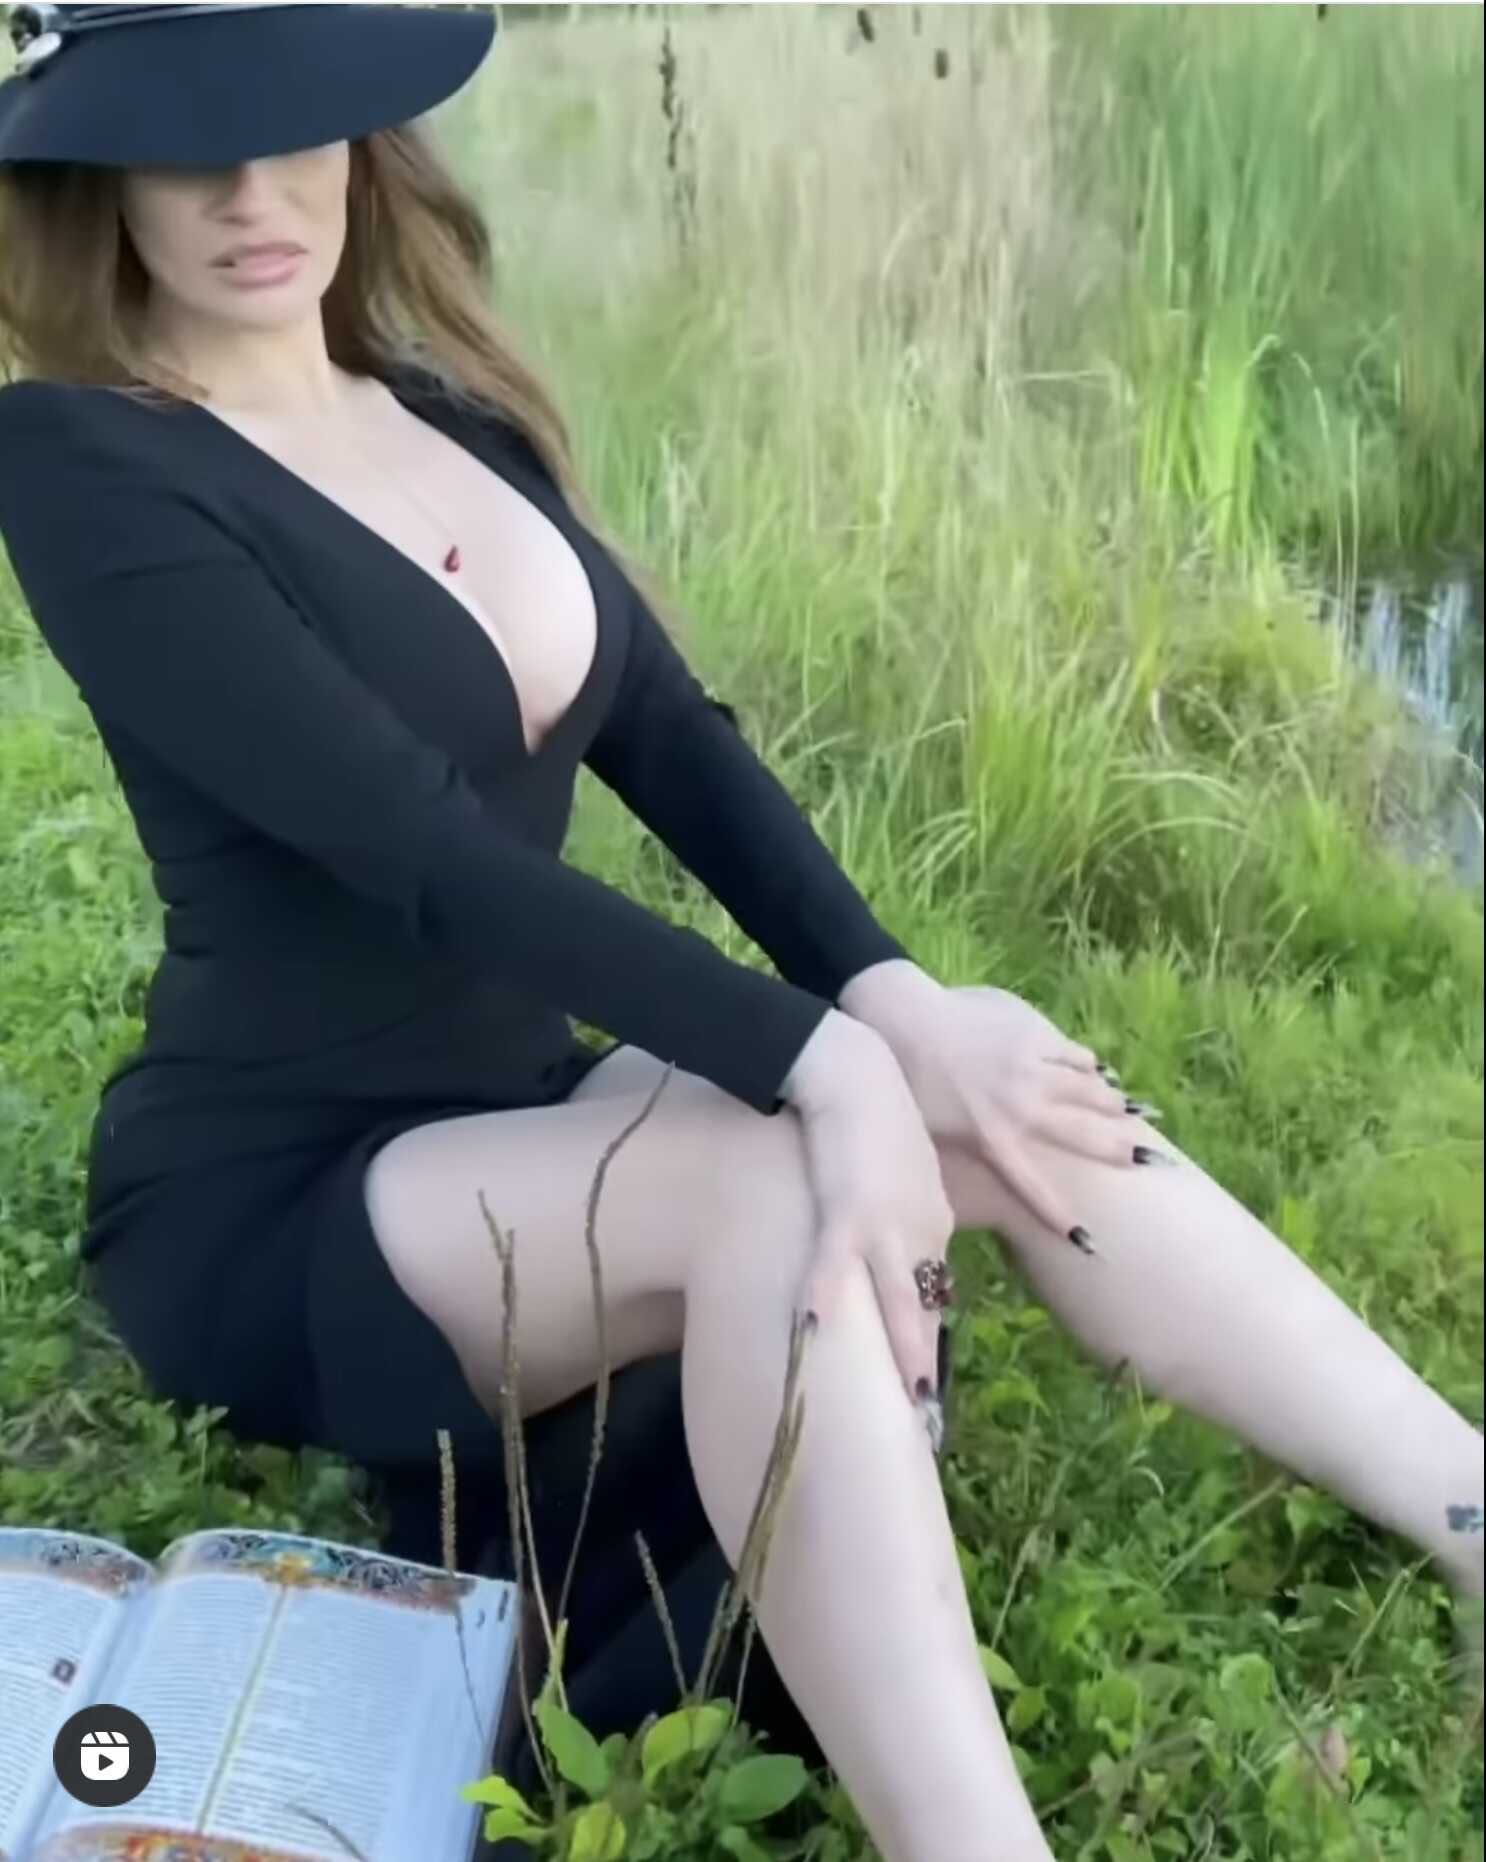 Alena Vodonaeva, dumping her chest and showing her underwear, tried to seduce the fishermen of the Moscow region, sitting in the reeds